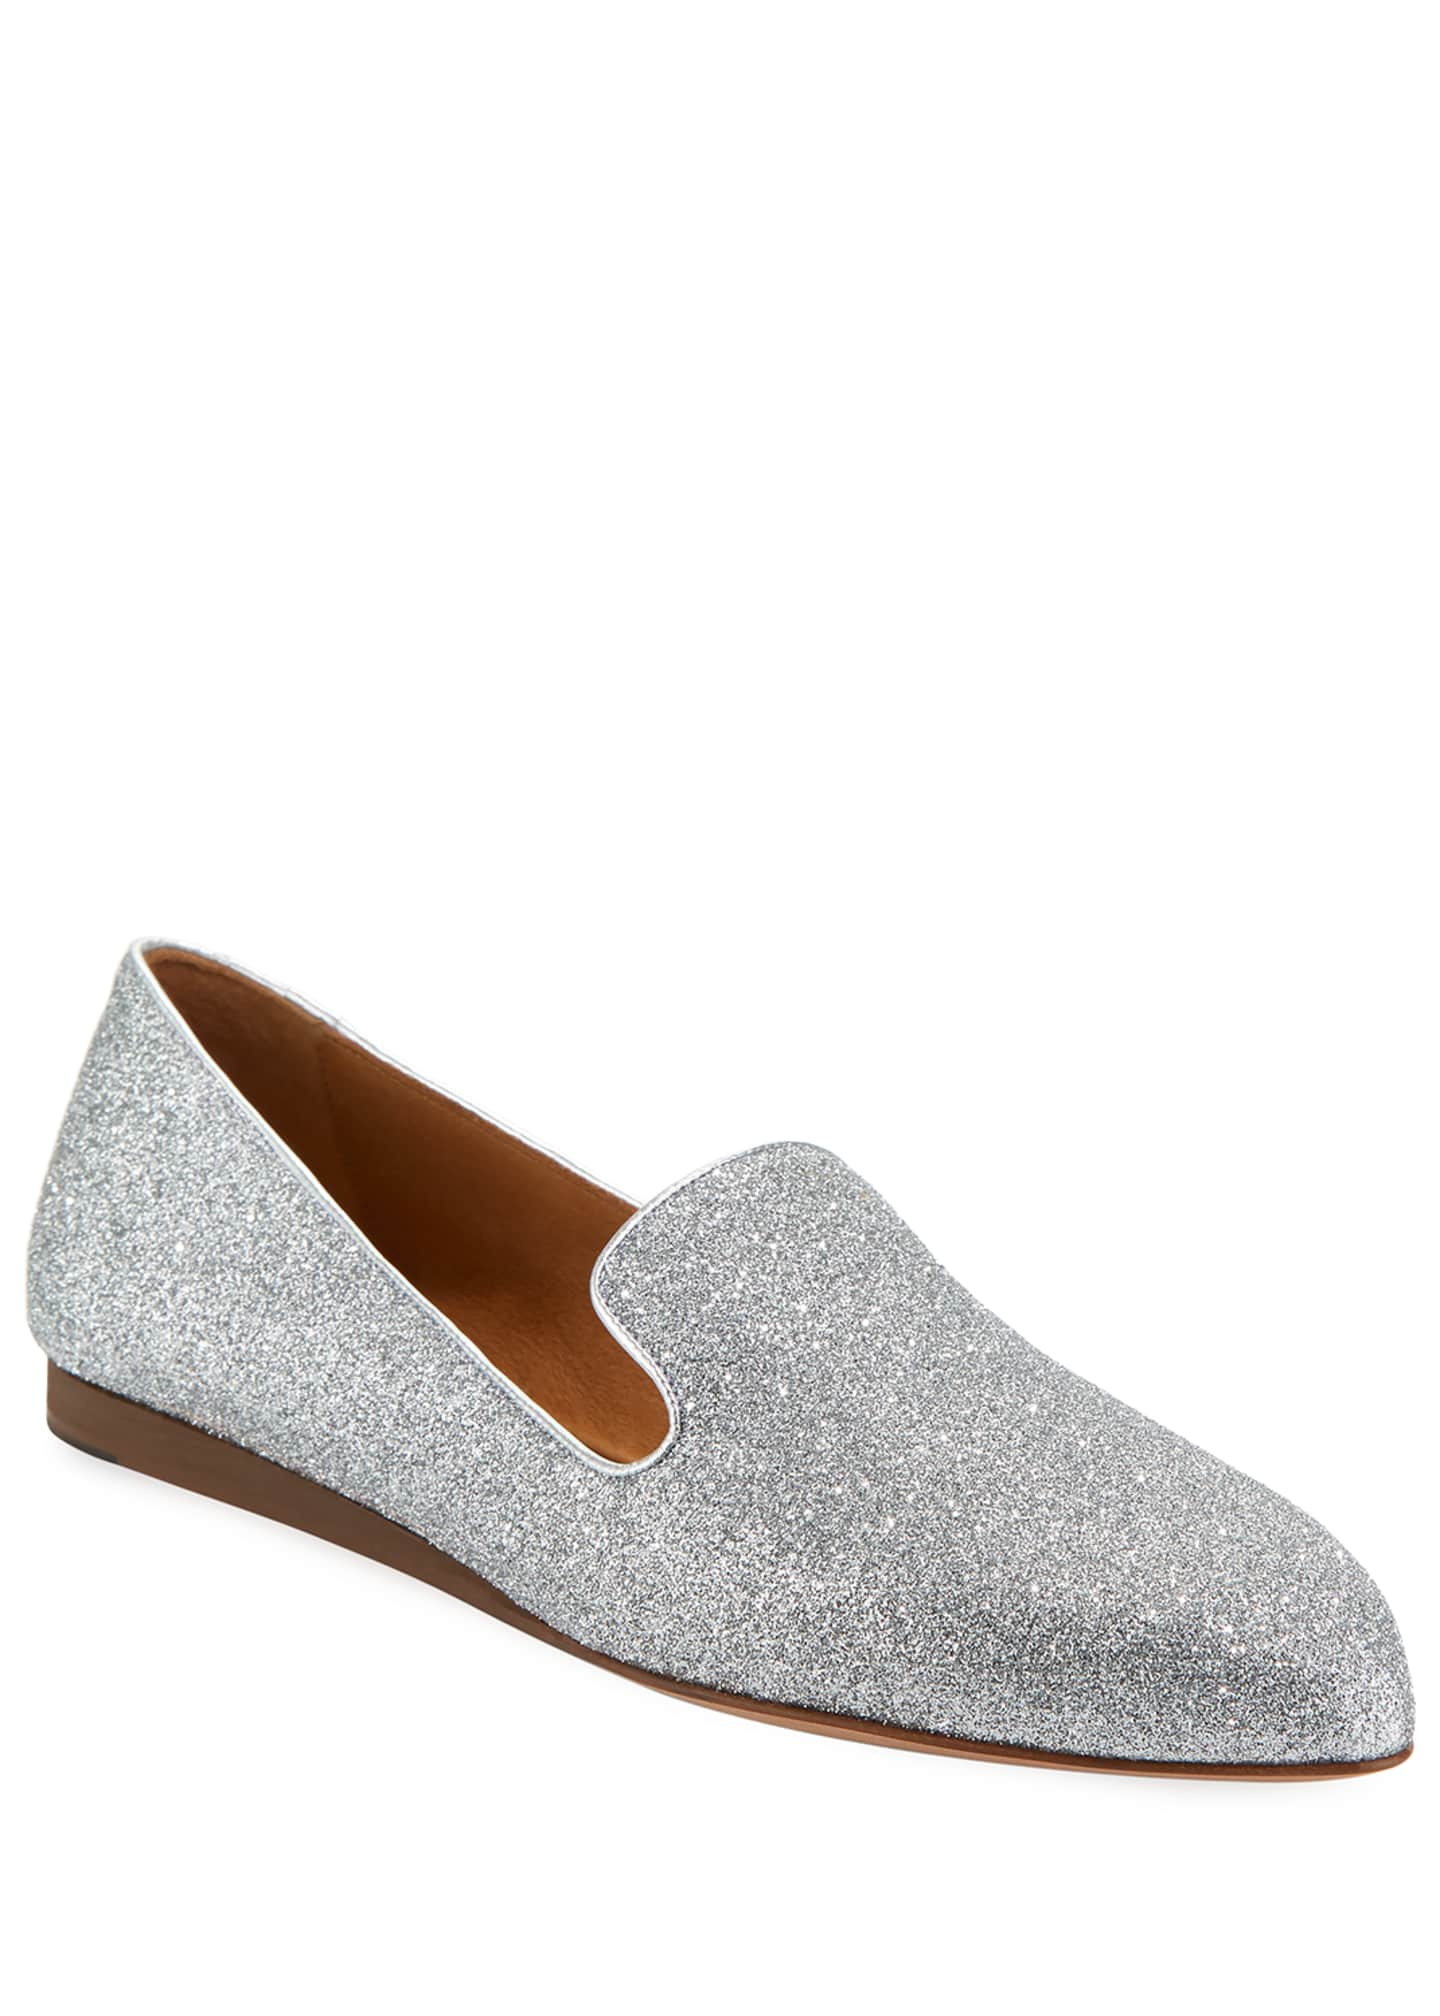 Image 1 of 3: Griffin Glitter Fabric Loafer